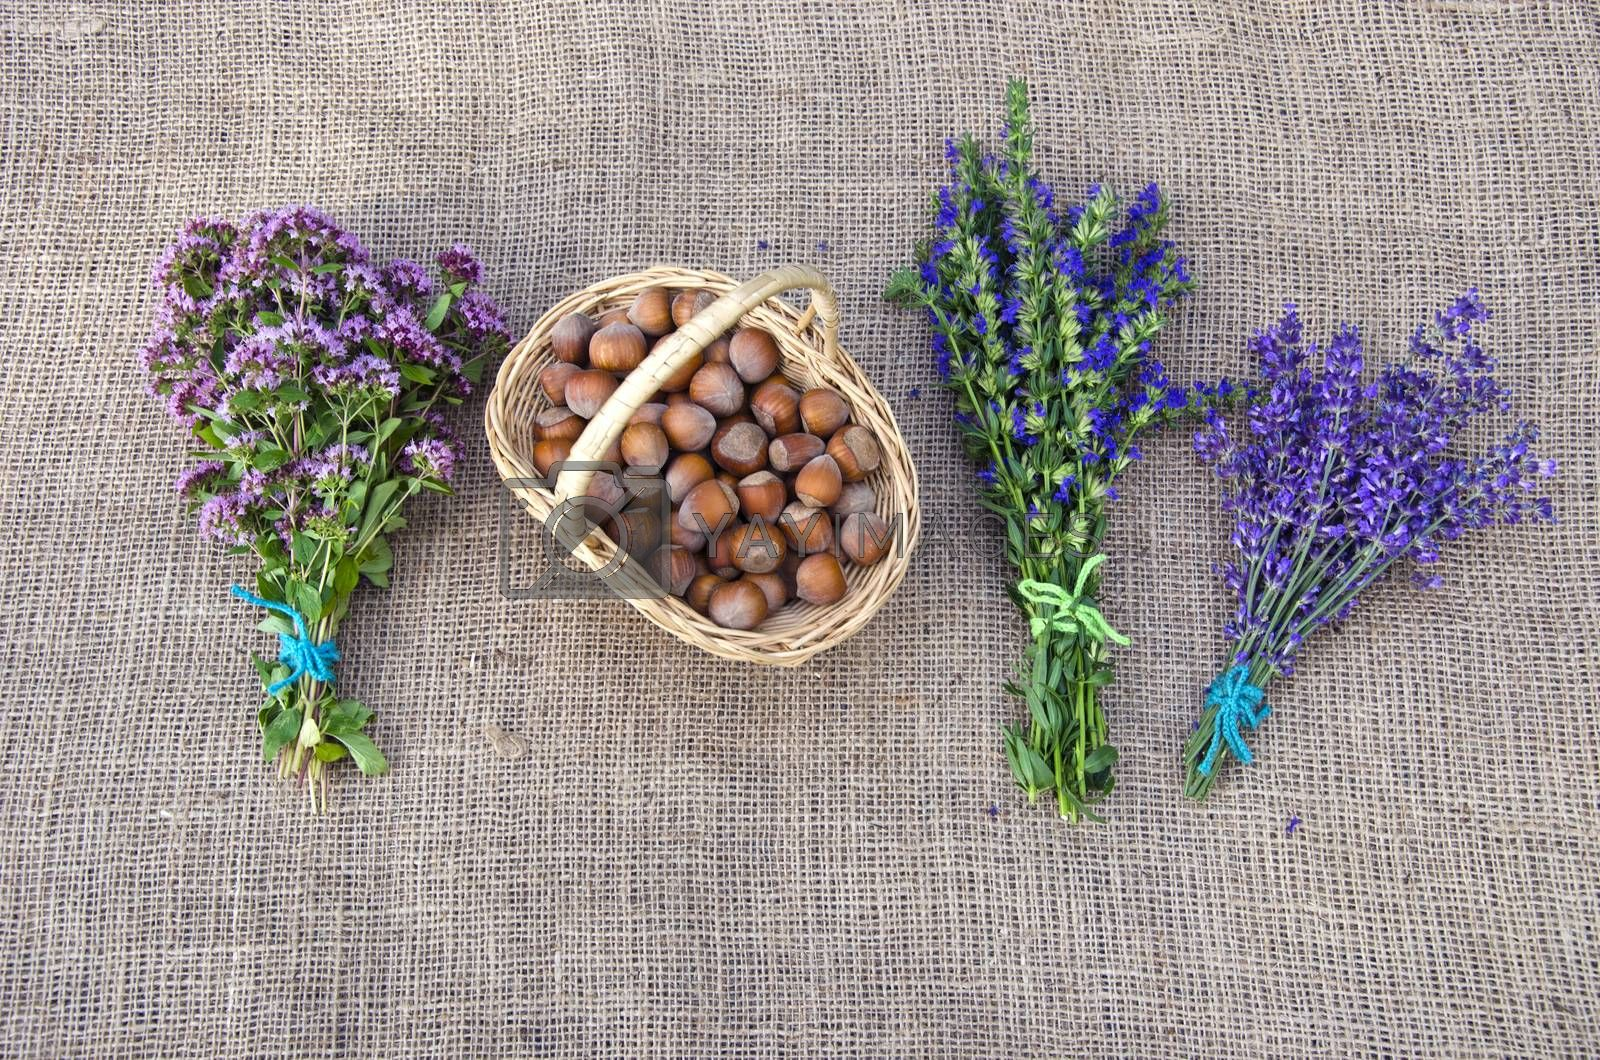 Royalty free image of Selection of herbs and hazelnuts on linen background by alis_photo